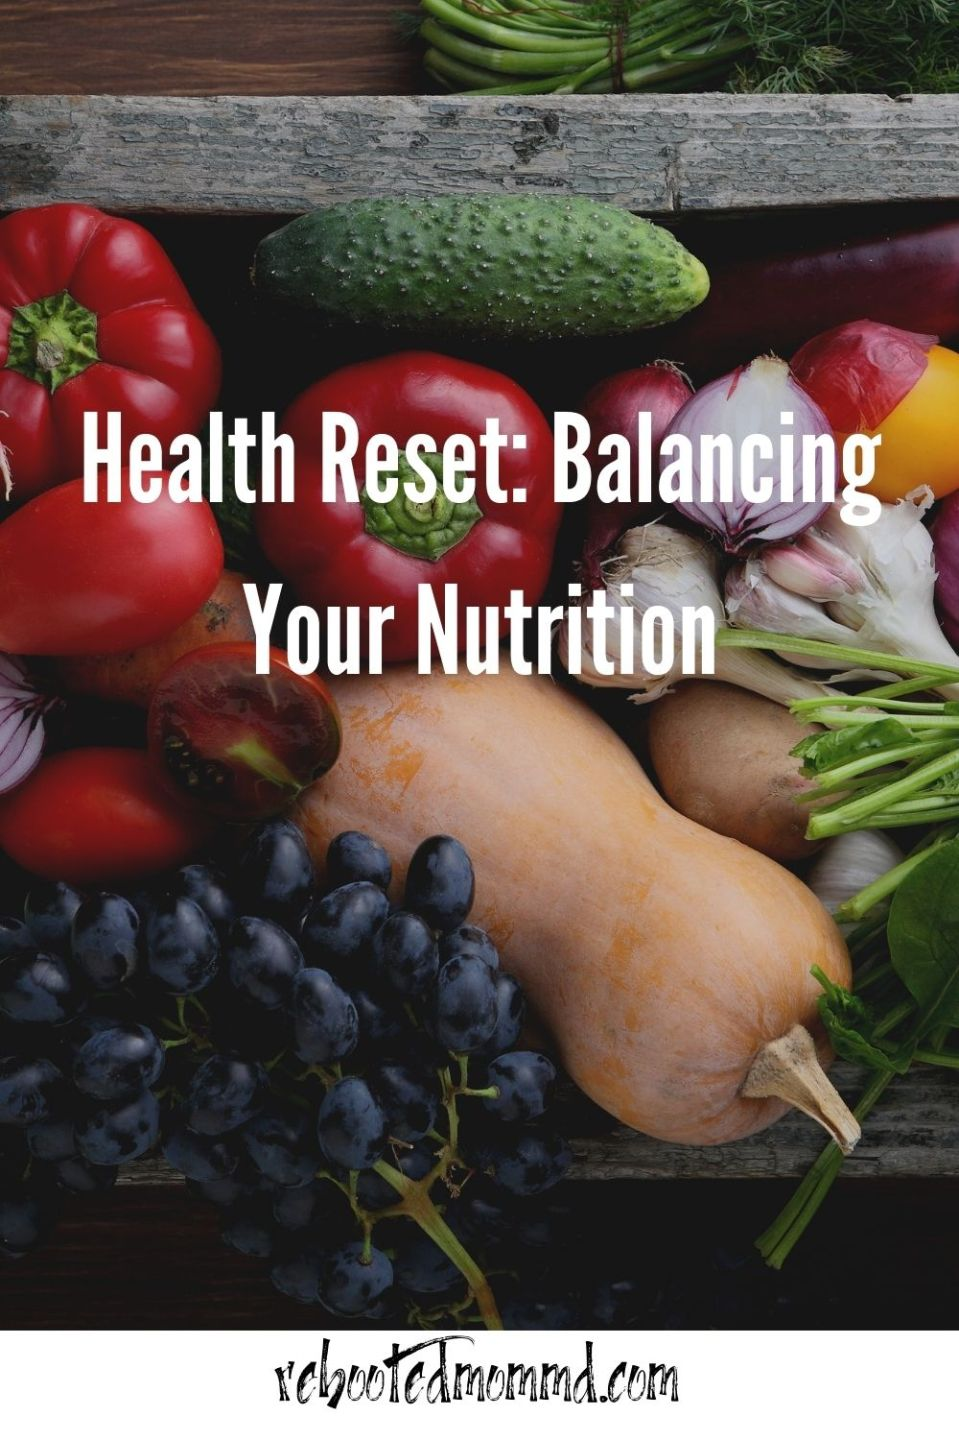 Health Reset: Balancing Your Nutrition